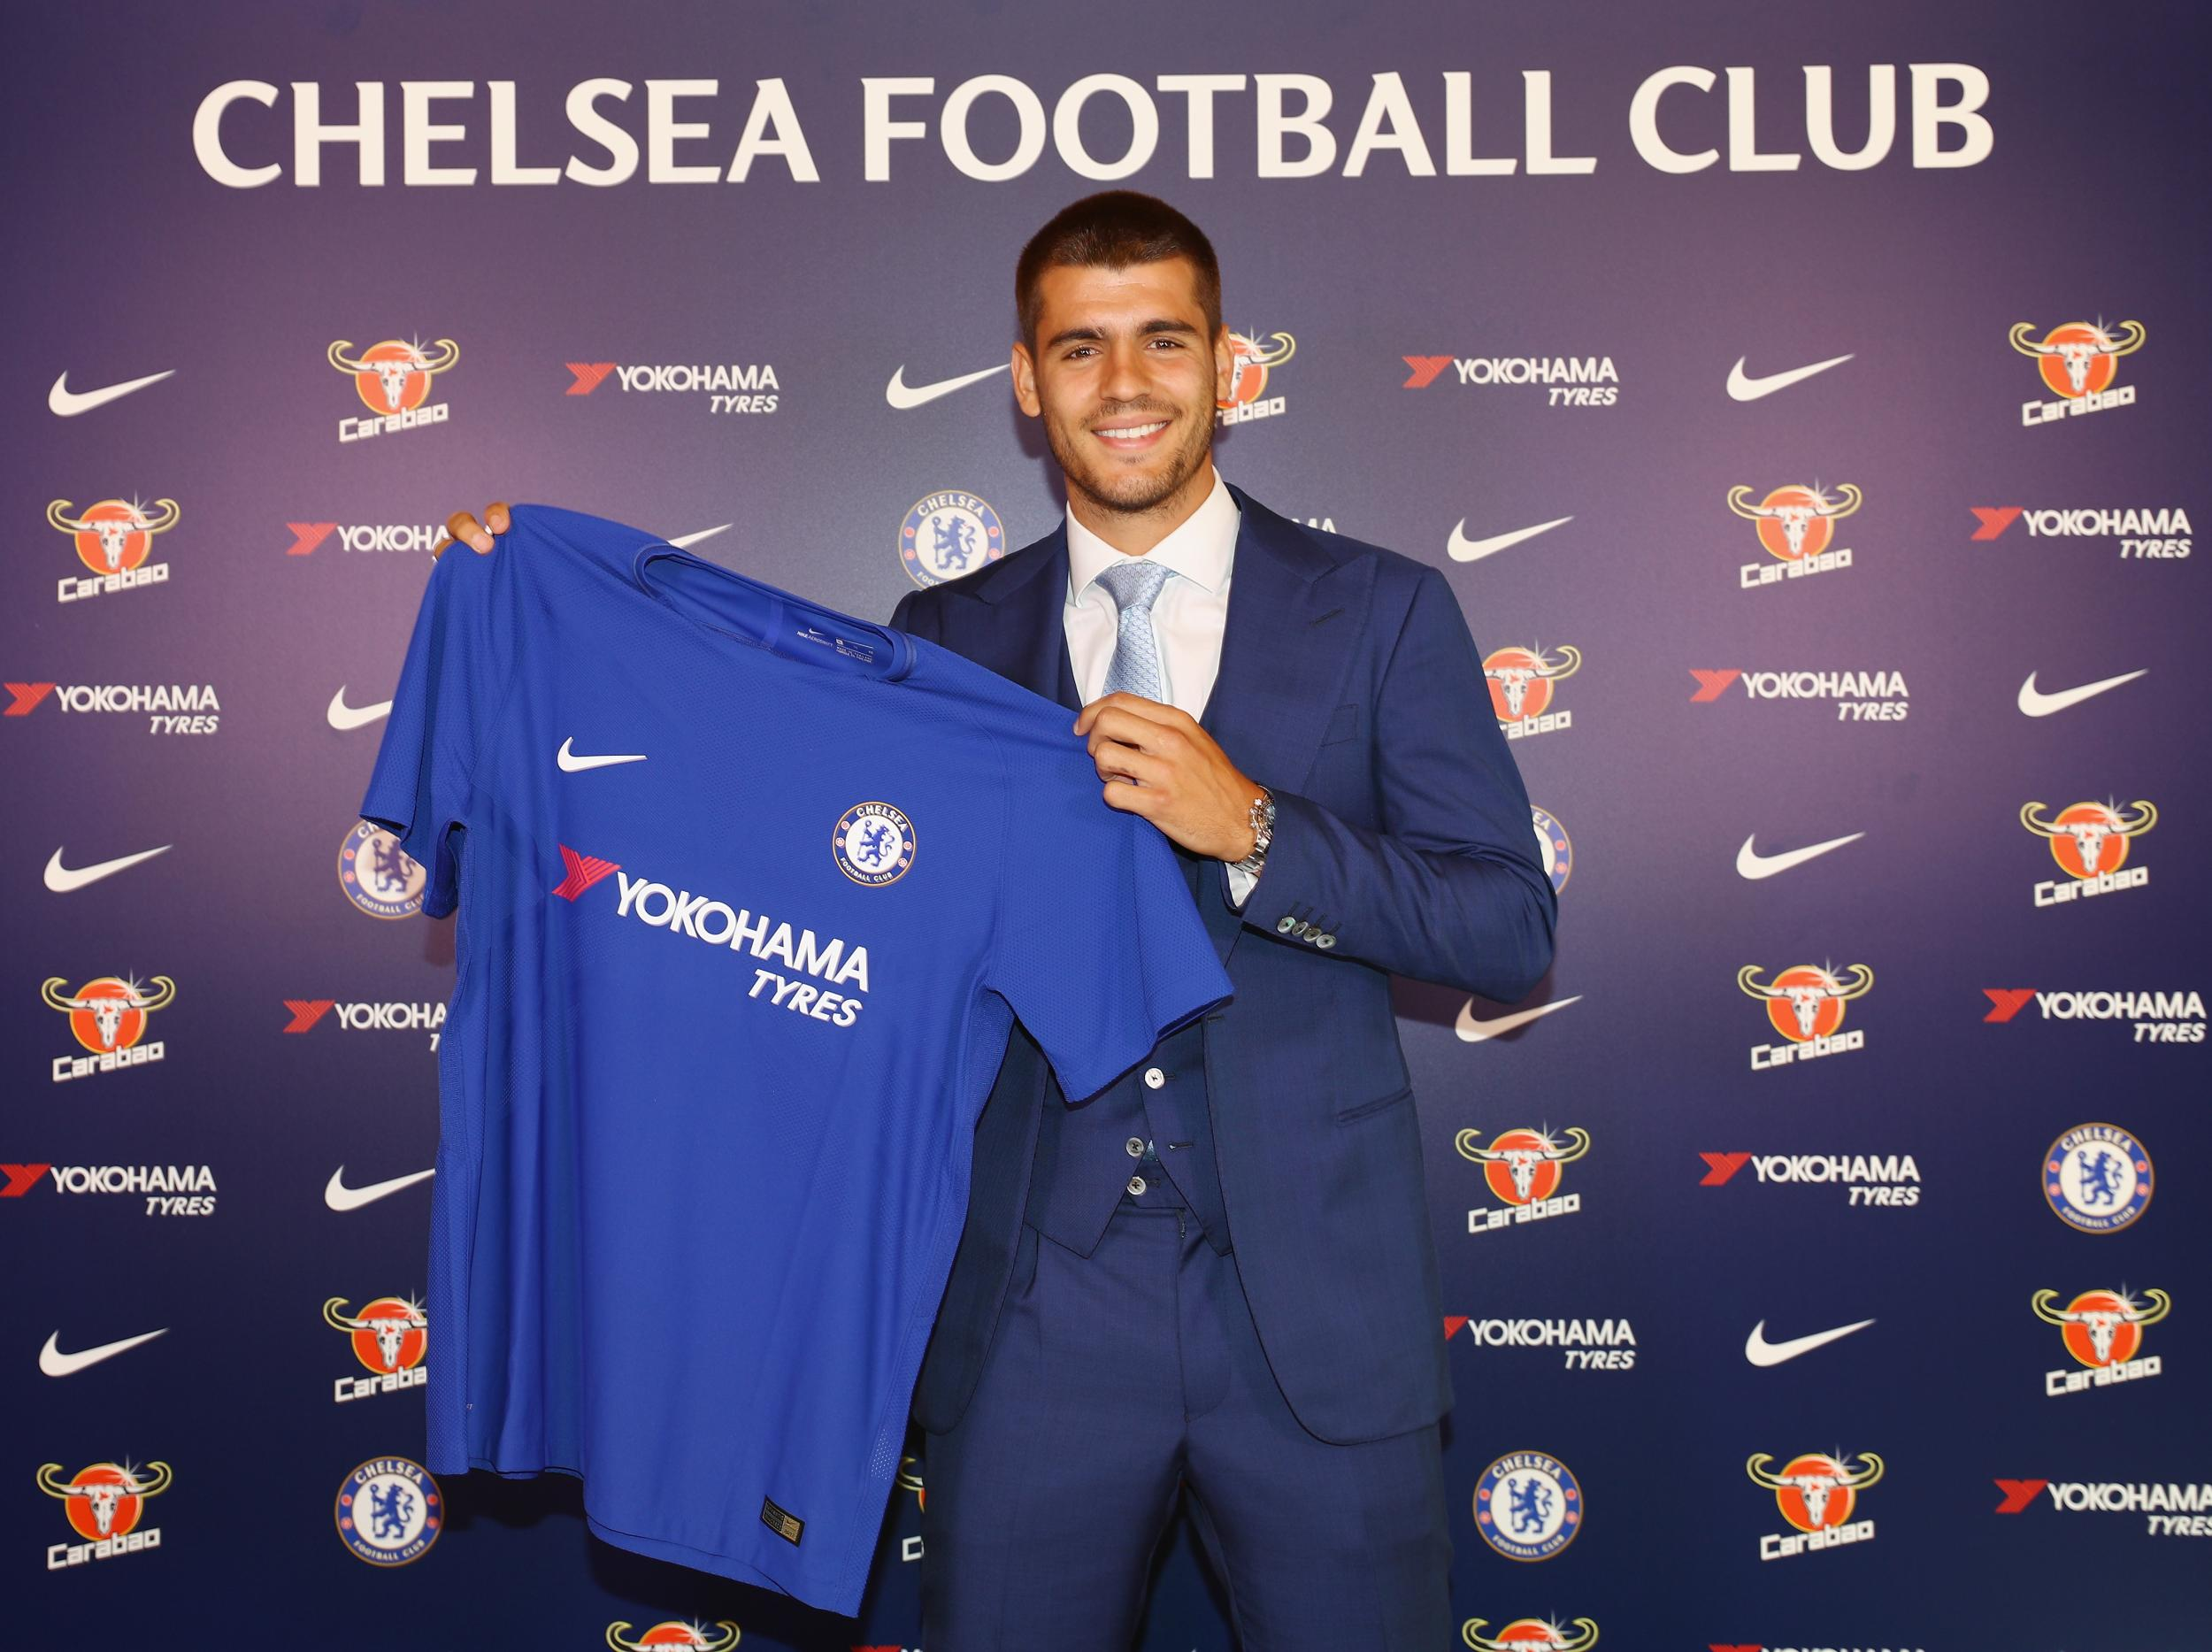 Chelsea complete club-record signing of Alvaro Morata from Real Madrid on a five-year contract | The Independent | The Independent